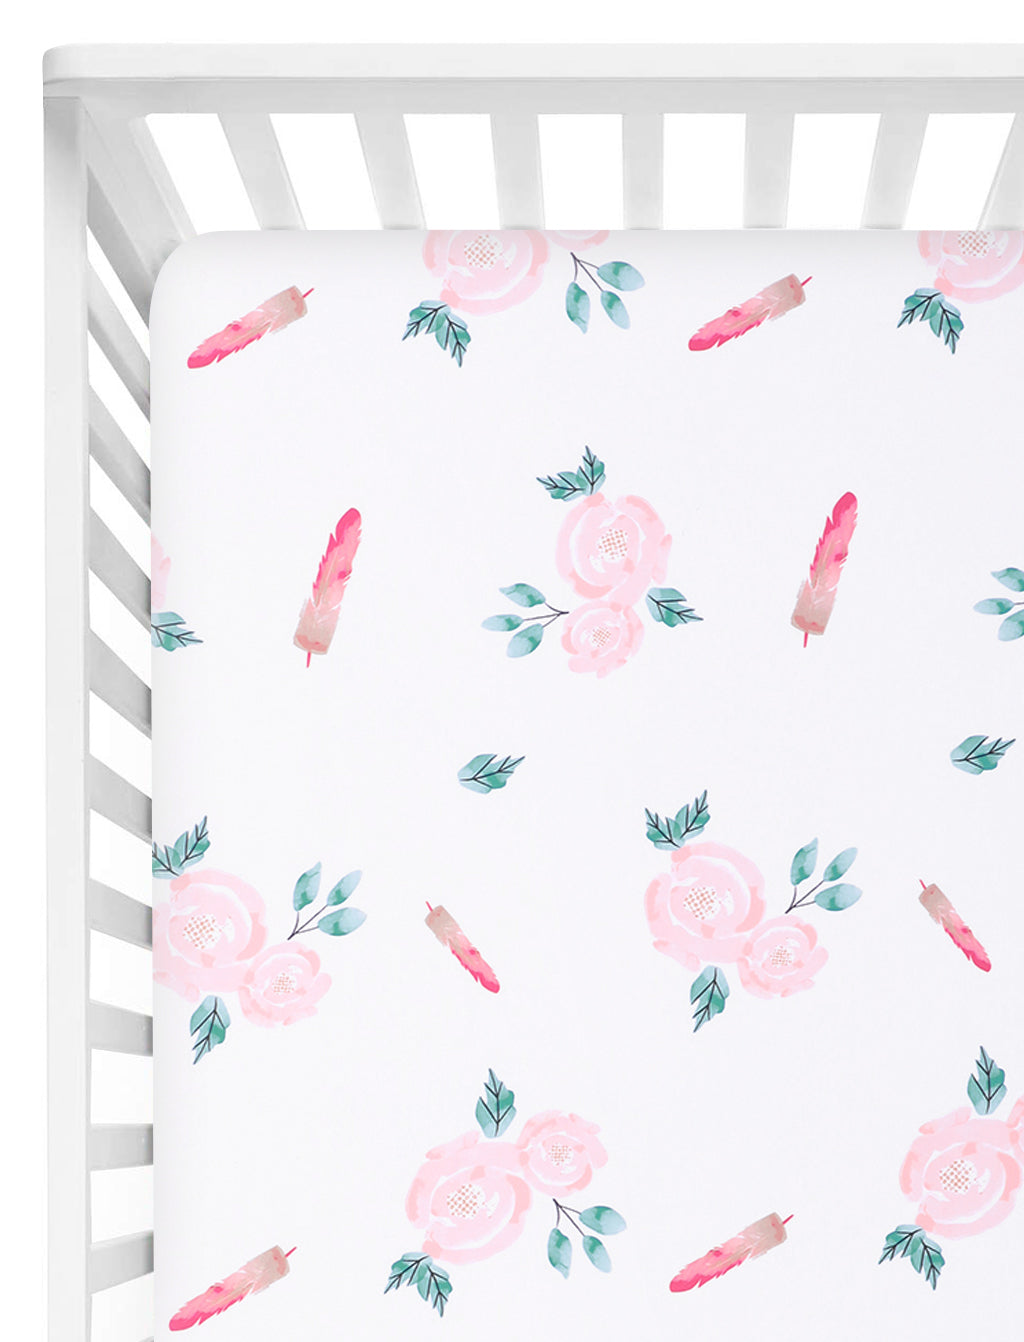 Microfiber Floral Crib Sheet - Rose Feather